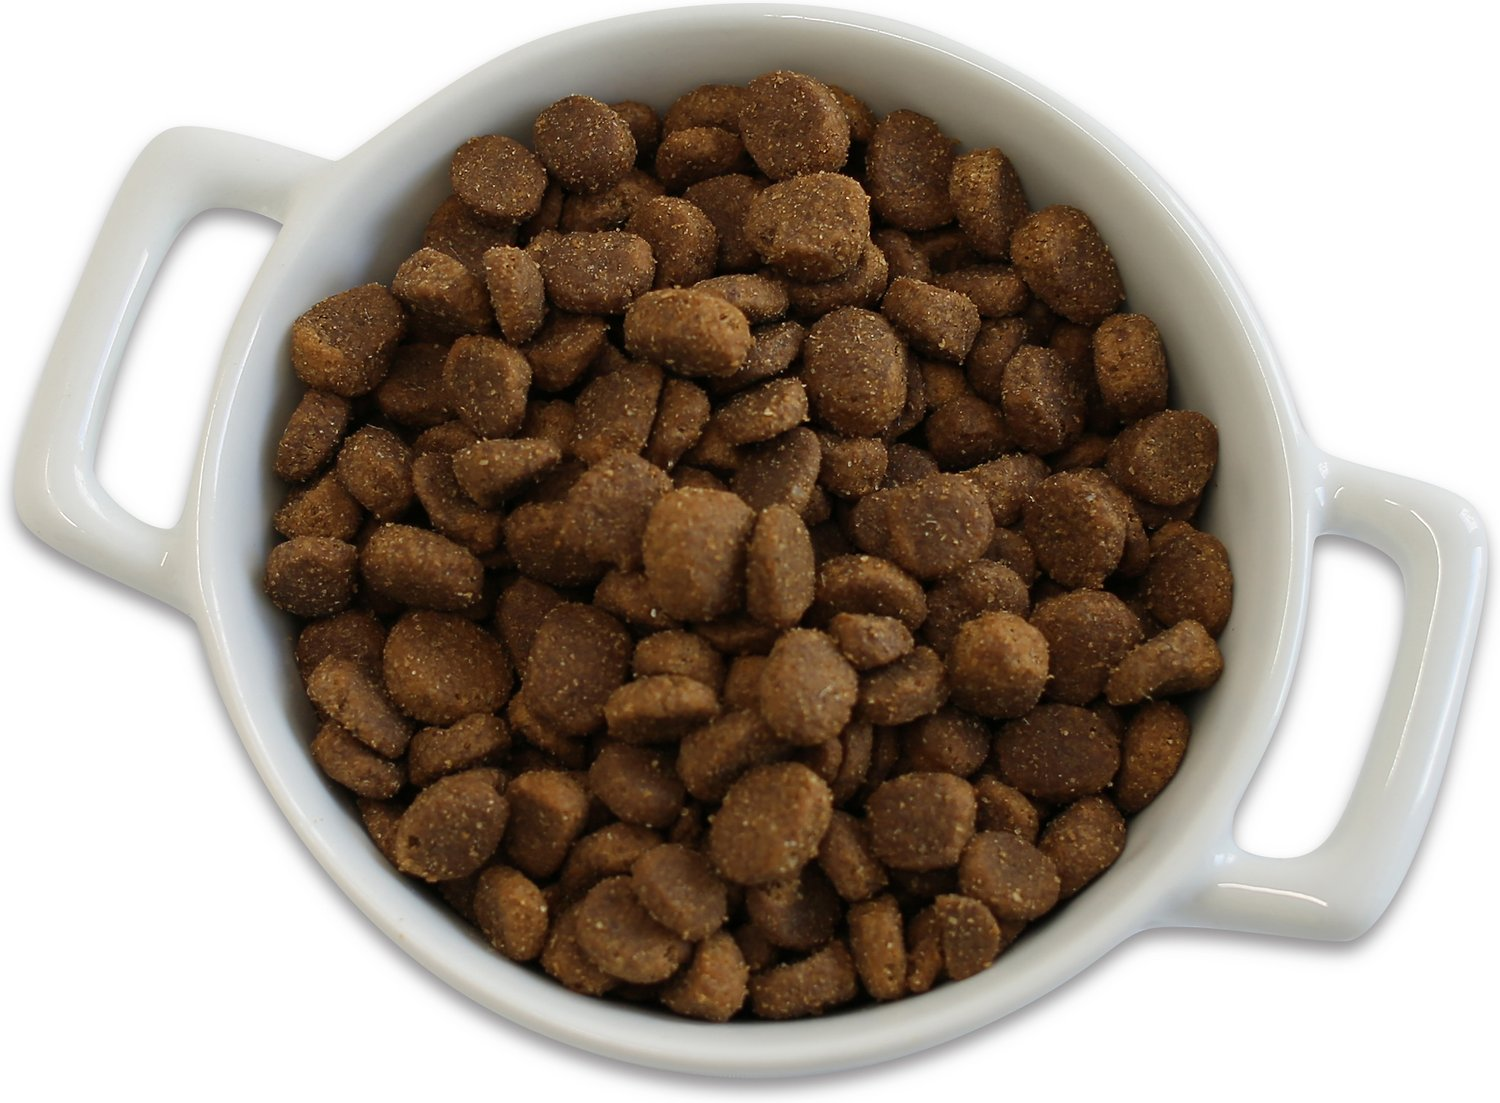 Grain Free Starch Free Dog Food